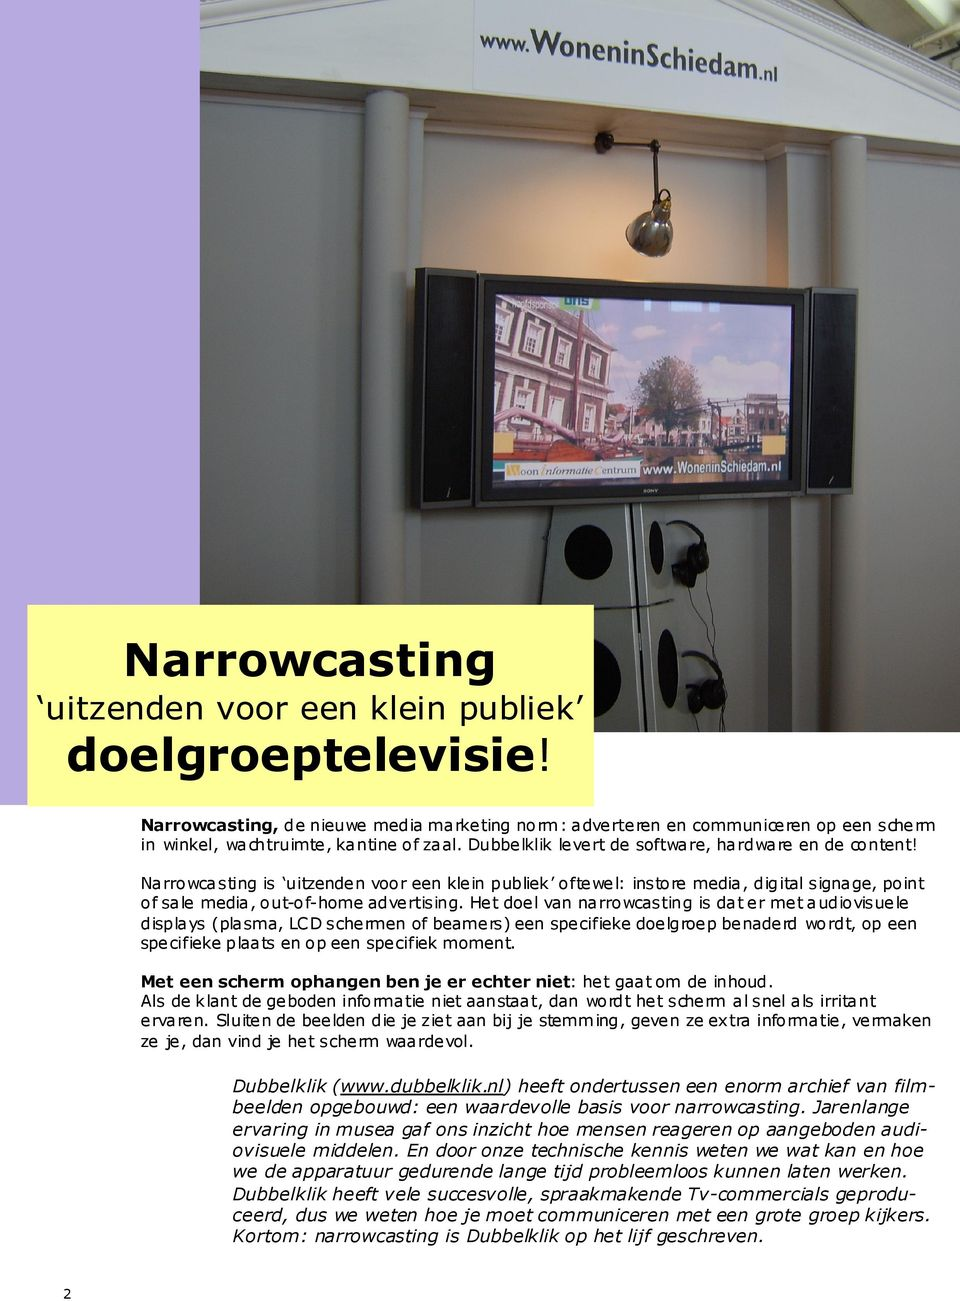 Narrowcasting is uitzende n voor een kle in publiek ofte we l: instore media, digital signage, point of sale media, out-of-home adve rtising.